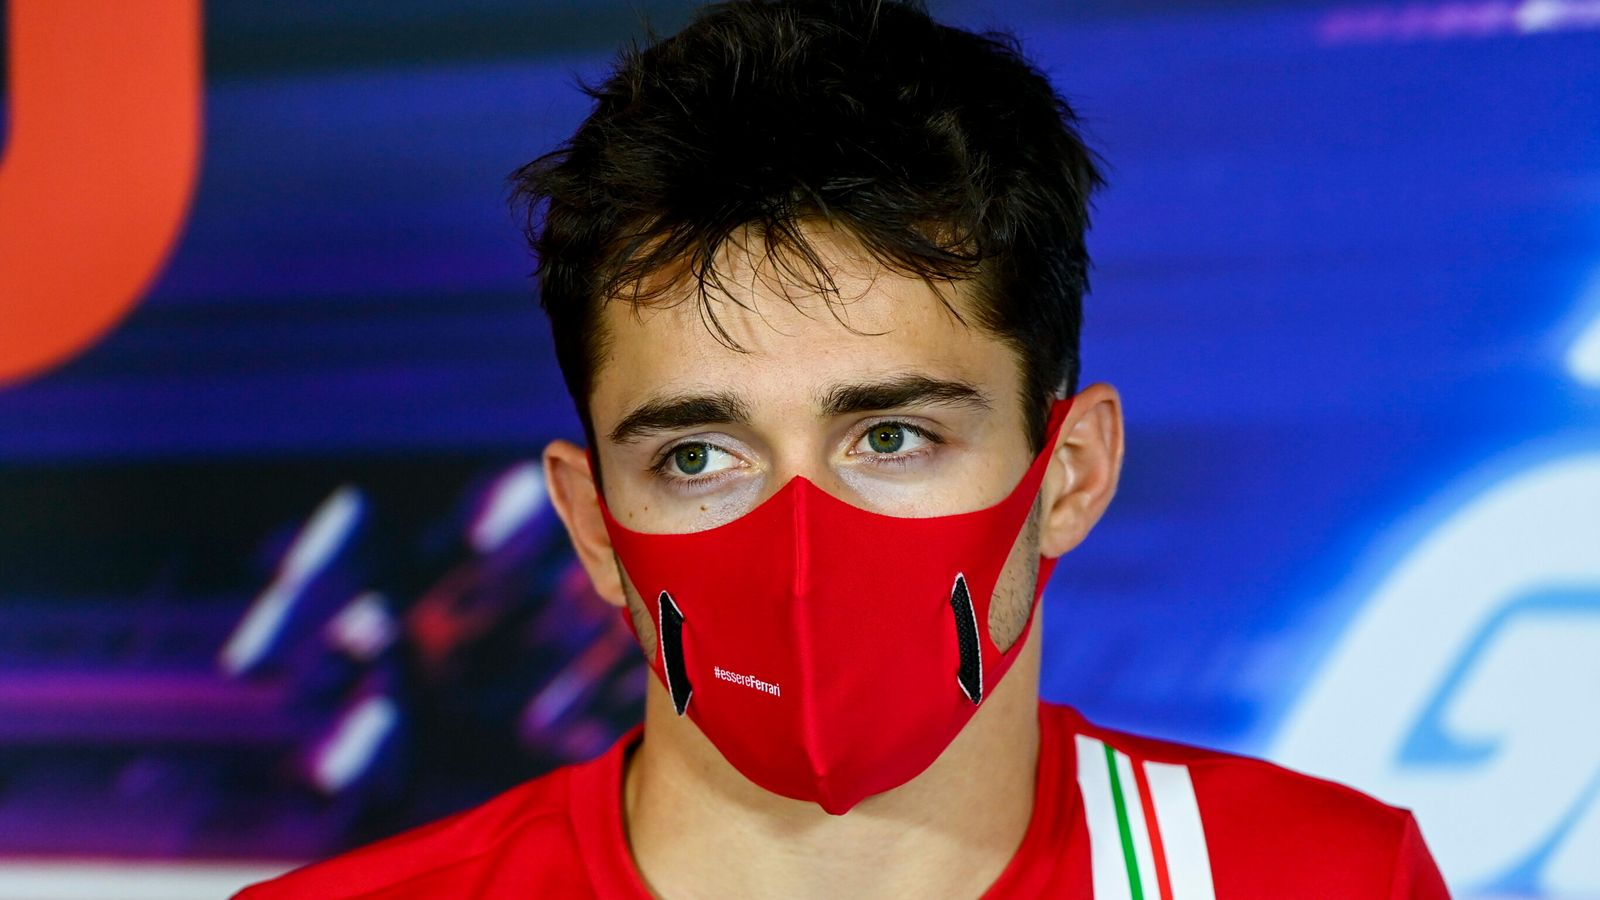 Charles Leclerc Ferrari Driver Tests Positive For